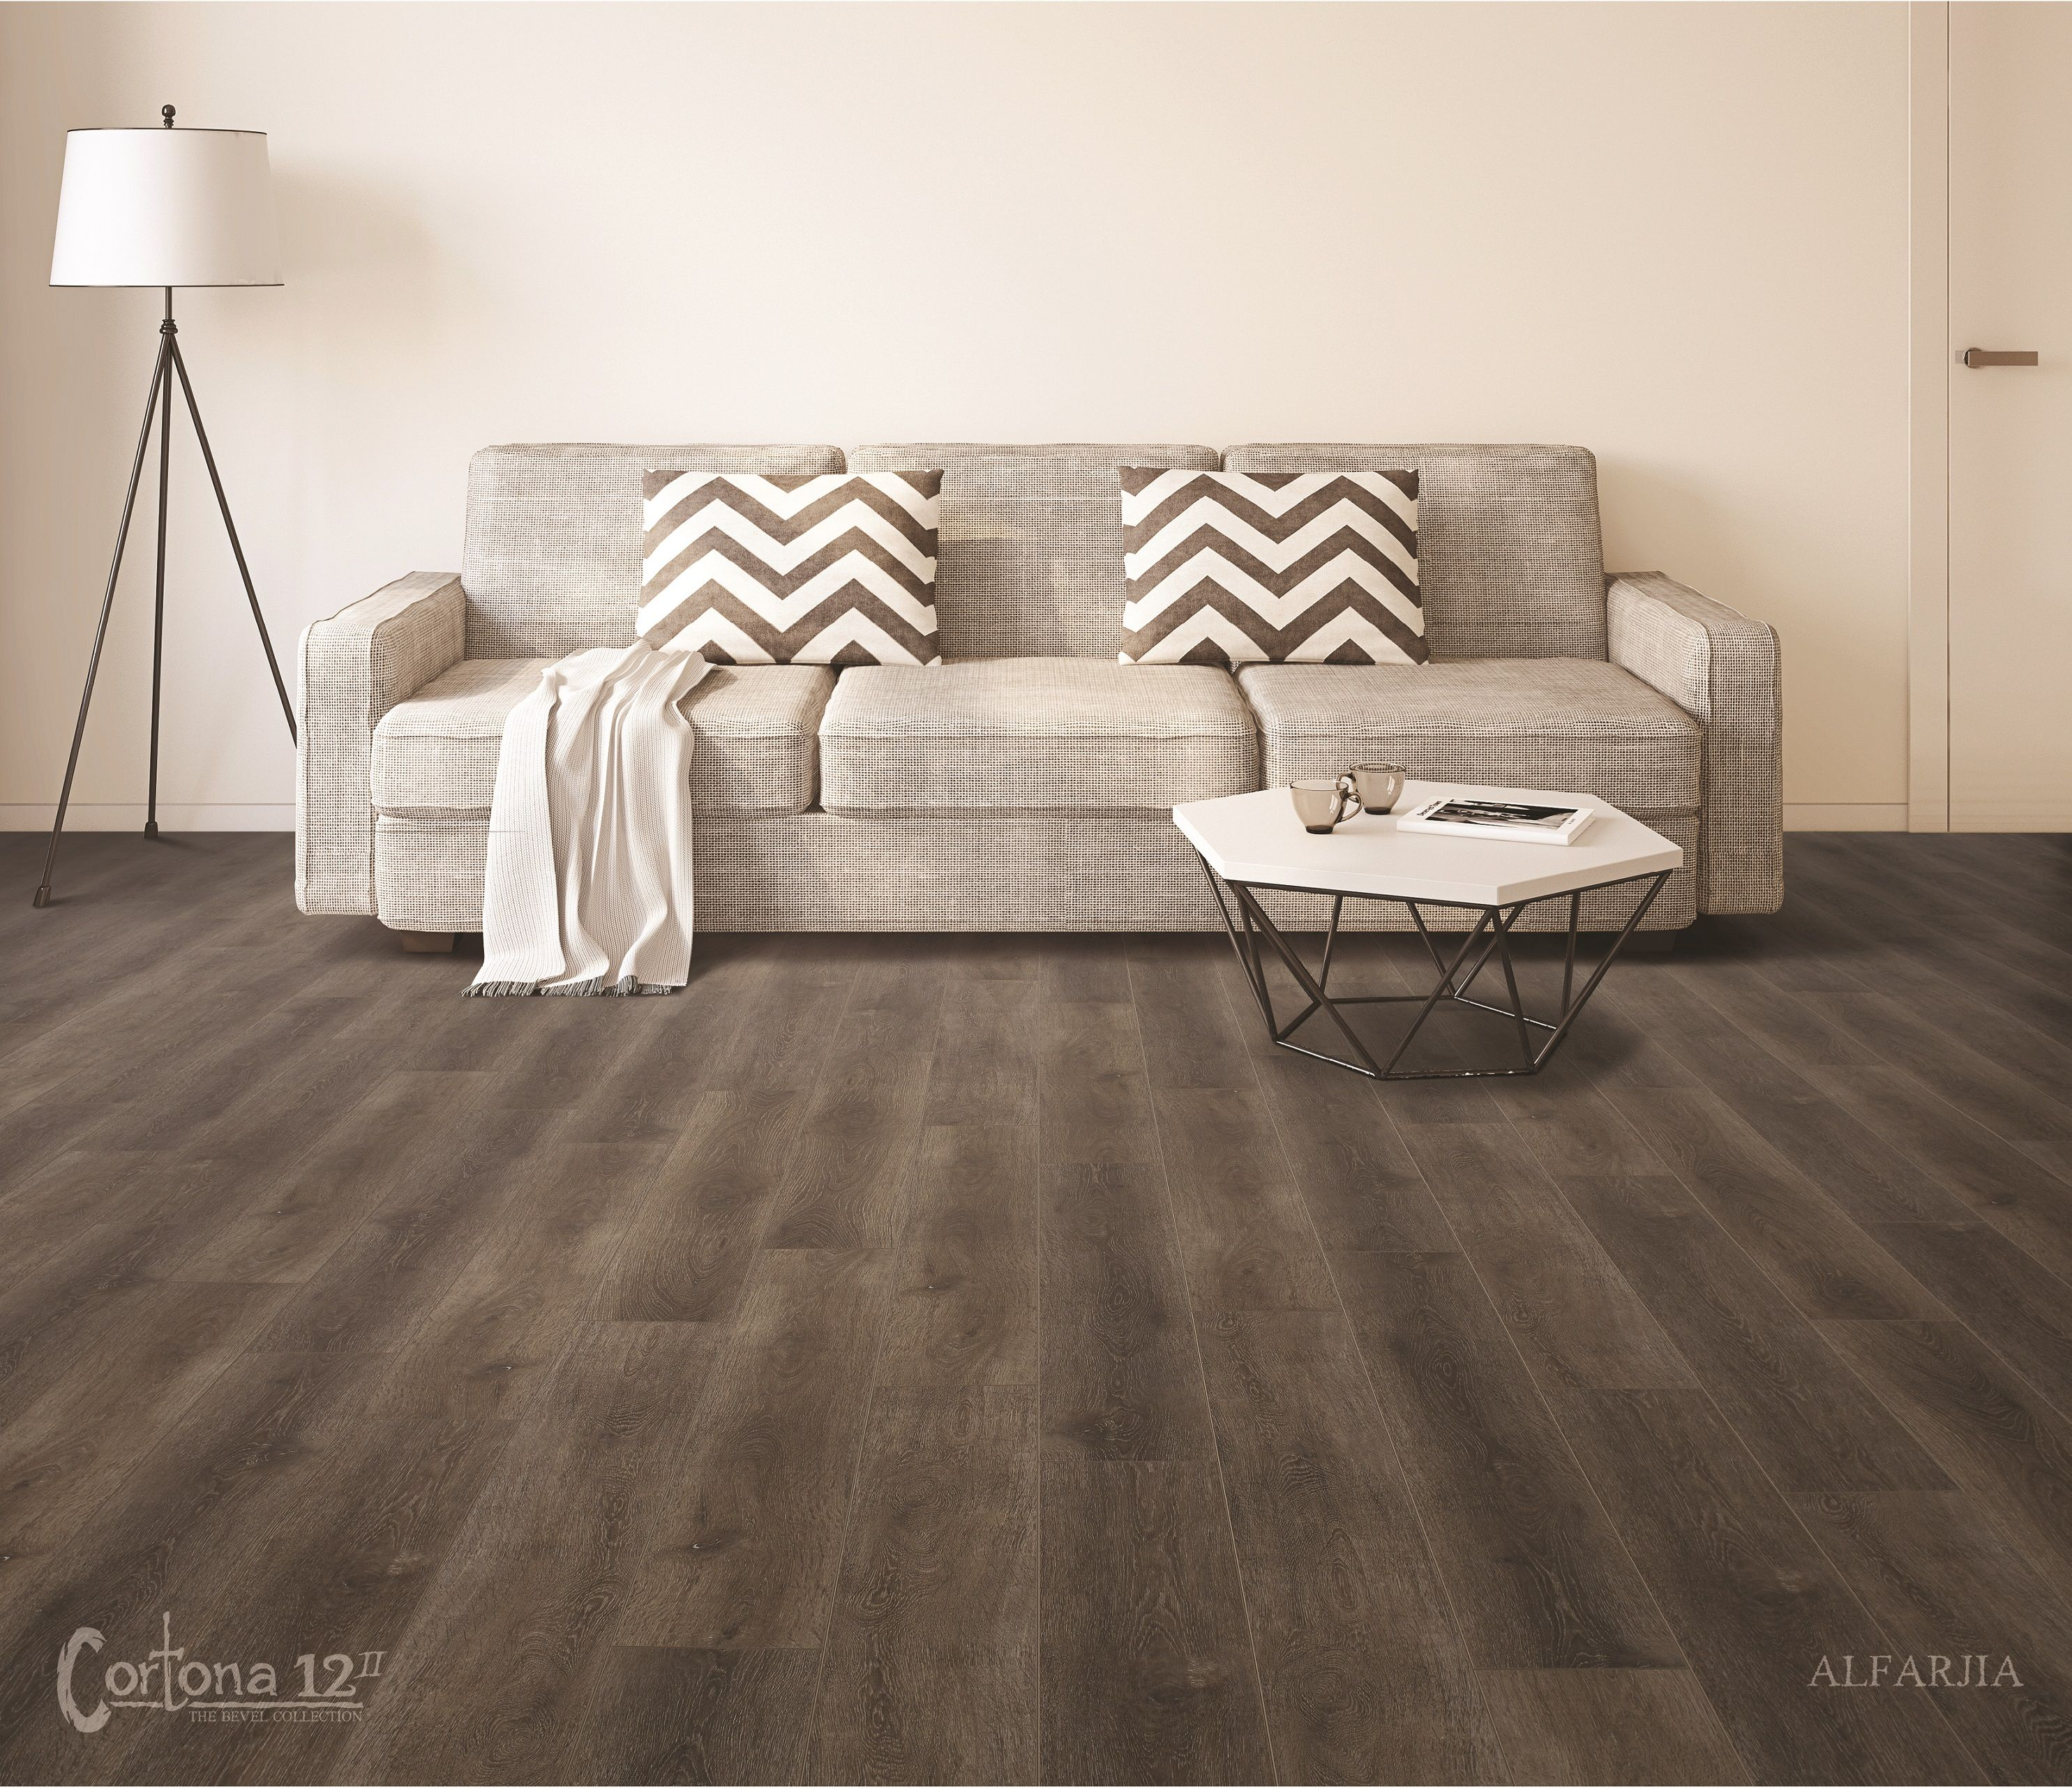 Stylish and realistic wood designs in luxury vinyl flooring 100